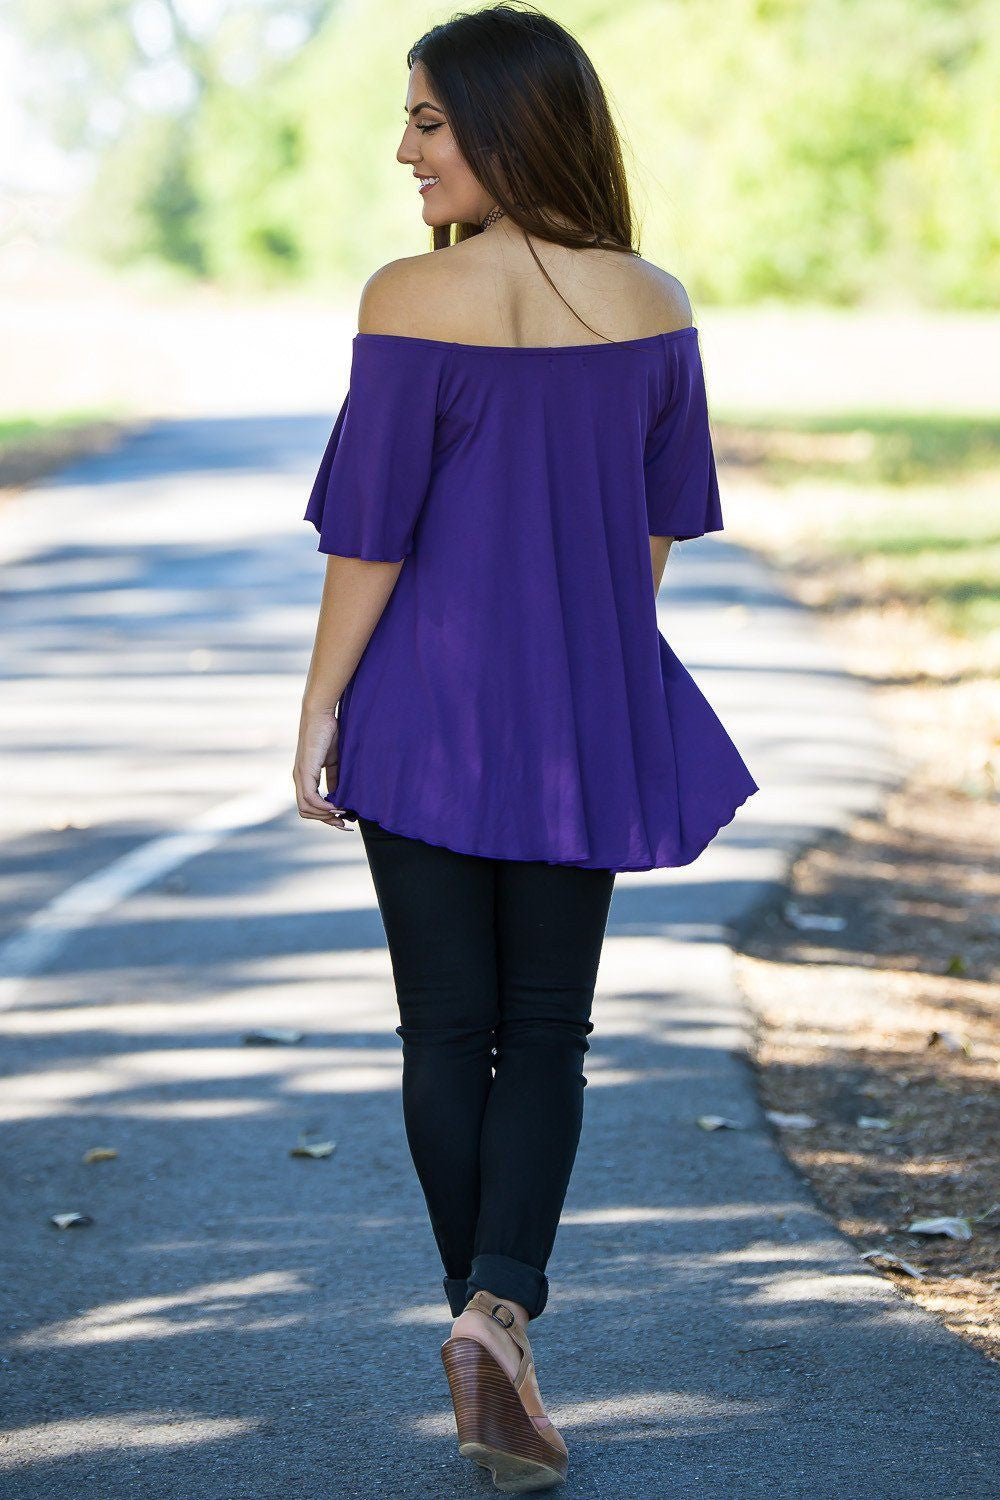 Off The Shoulder Short Sleeve Piko Top - Dark Purple - Piko Clothing